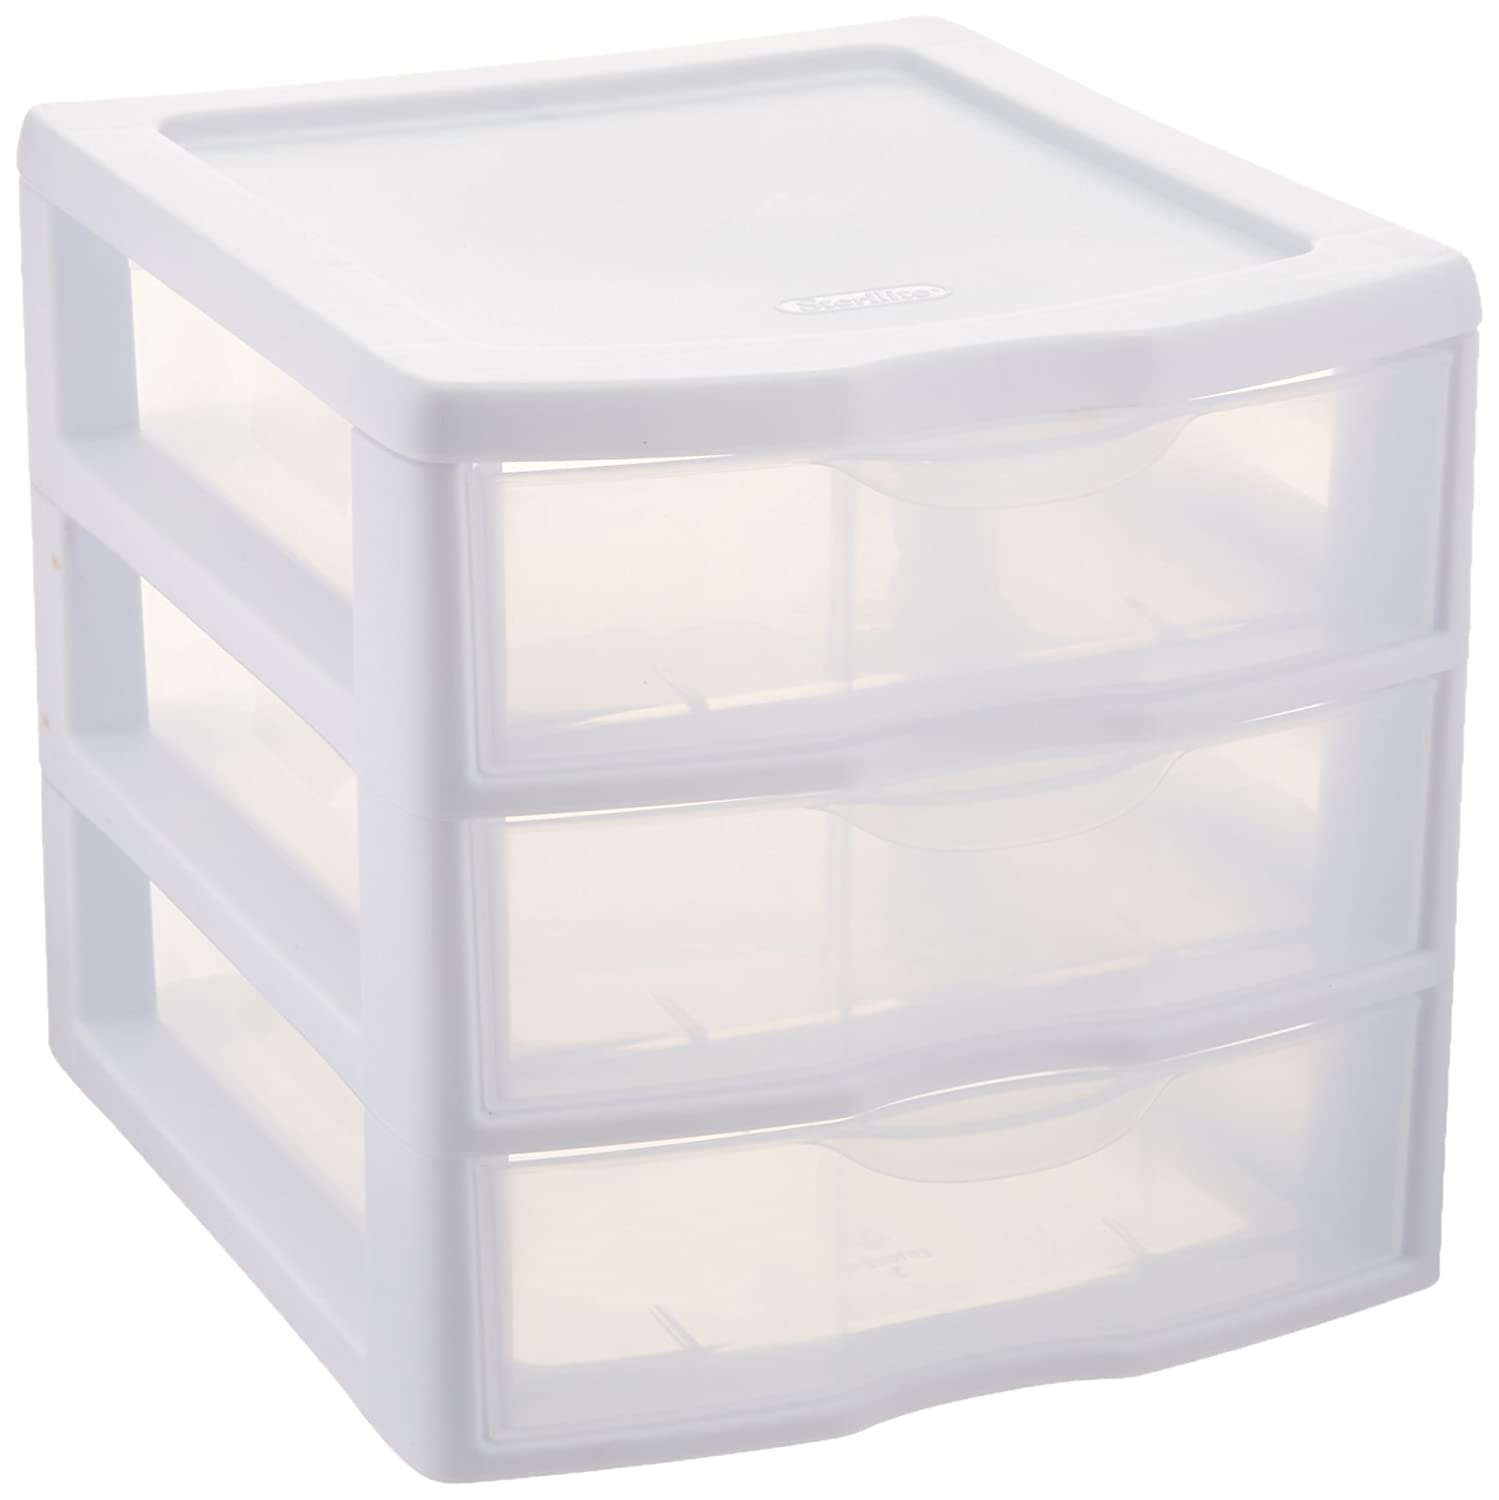 large bins tower totes rubbermaid lids storage clear fabric baskets stacking bin small containers big inch plastic drawers with blue drawer boxes